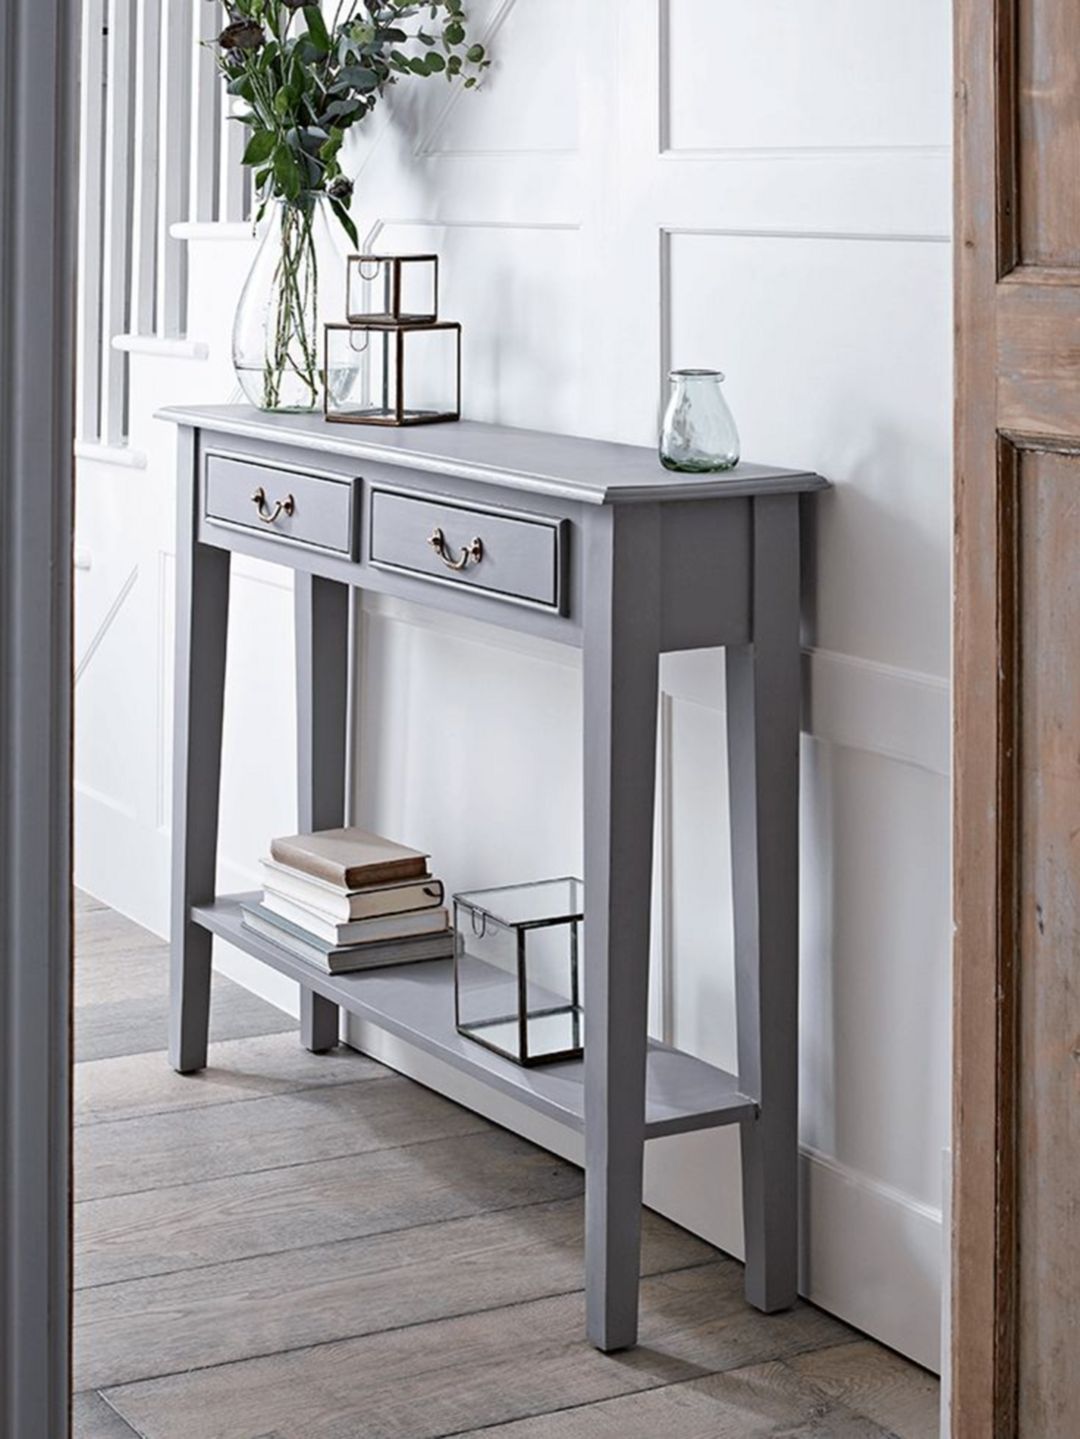 30 Unique Vintage Entryway Table Design Ideas That Will Enhance Your Small Space Console Table Hallway Hall Table Decor Small Console Tables